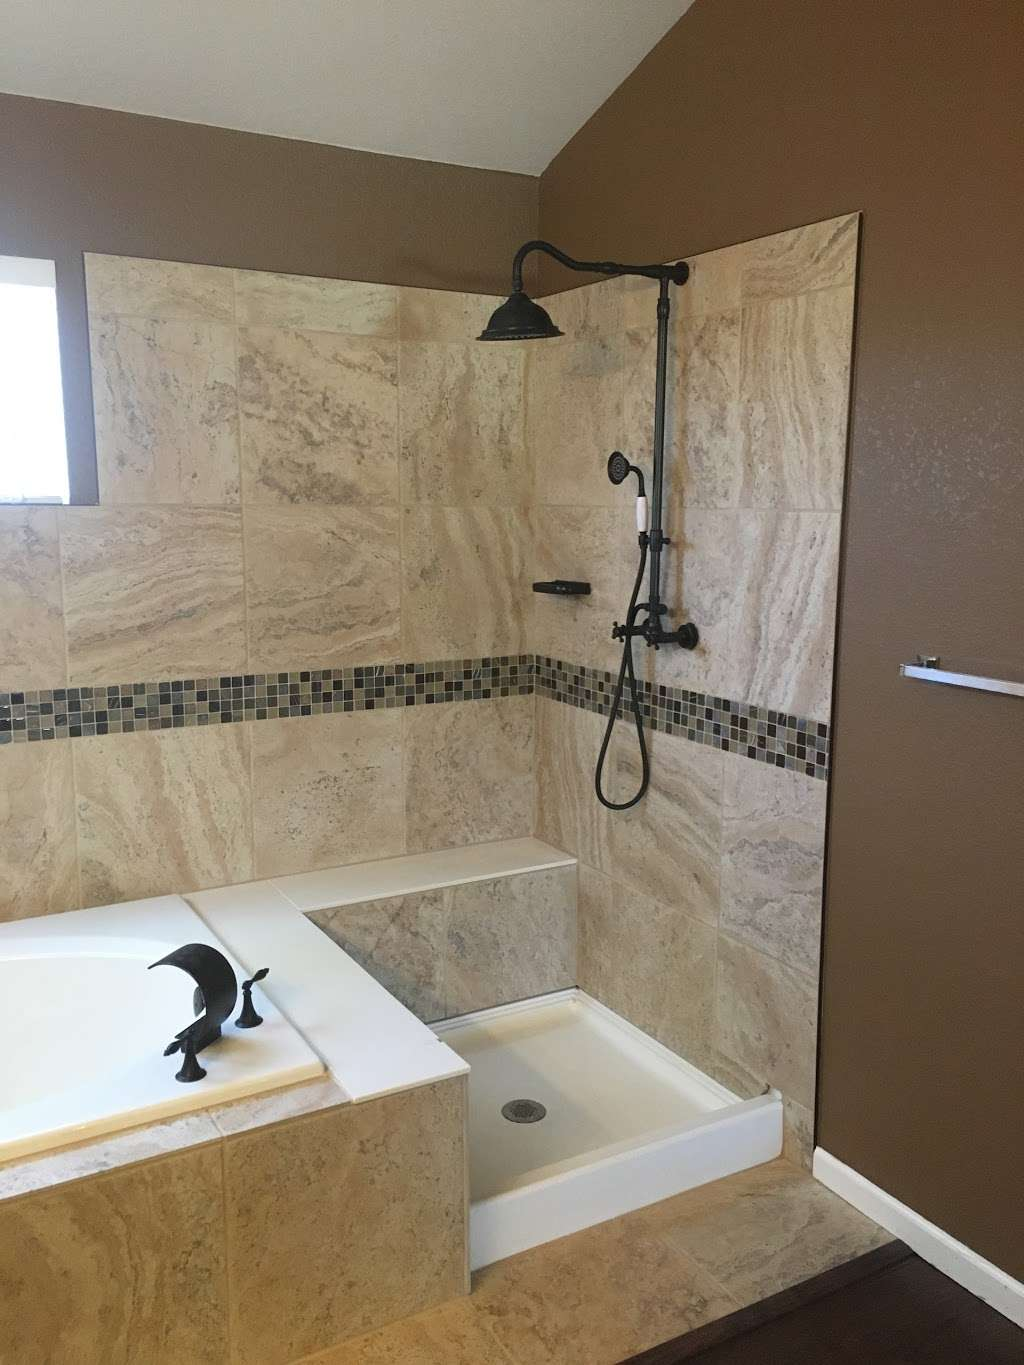 Wellspring Home Services - painter    Photo 9 of 9   Address: 4412 E Mulberry St Lot 288, Fort Collins, CO 80524, USA   Phone: (719) 659-2759